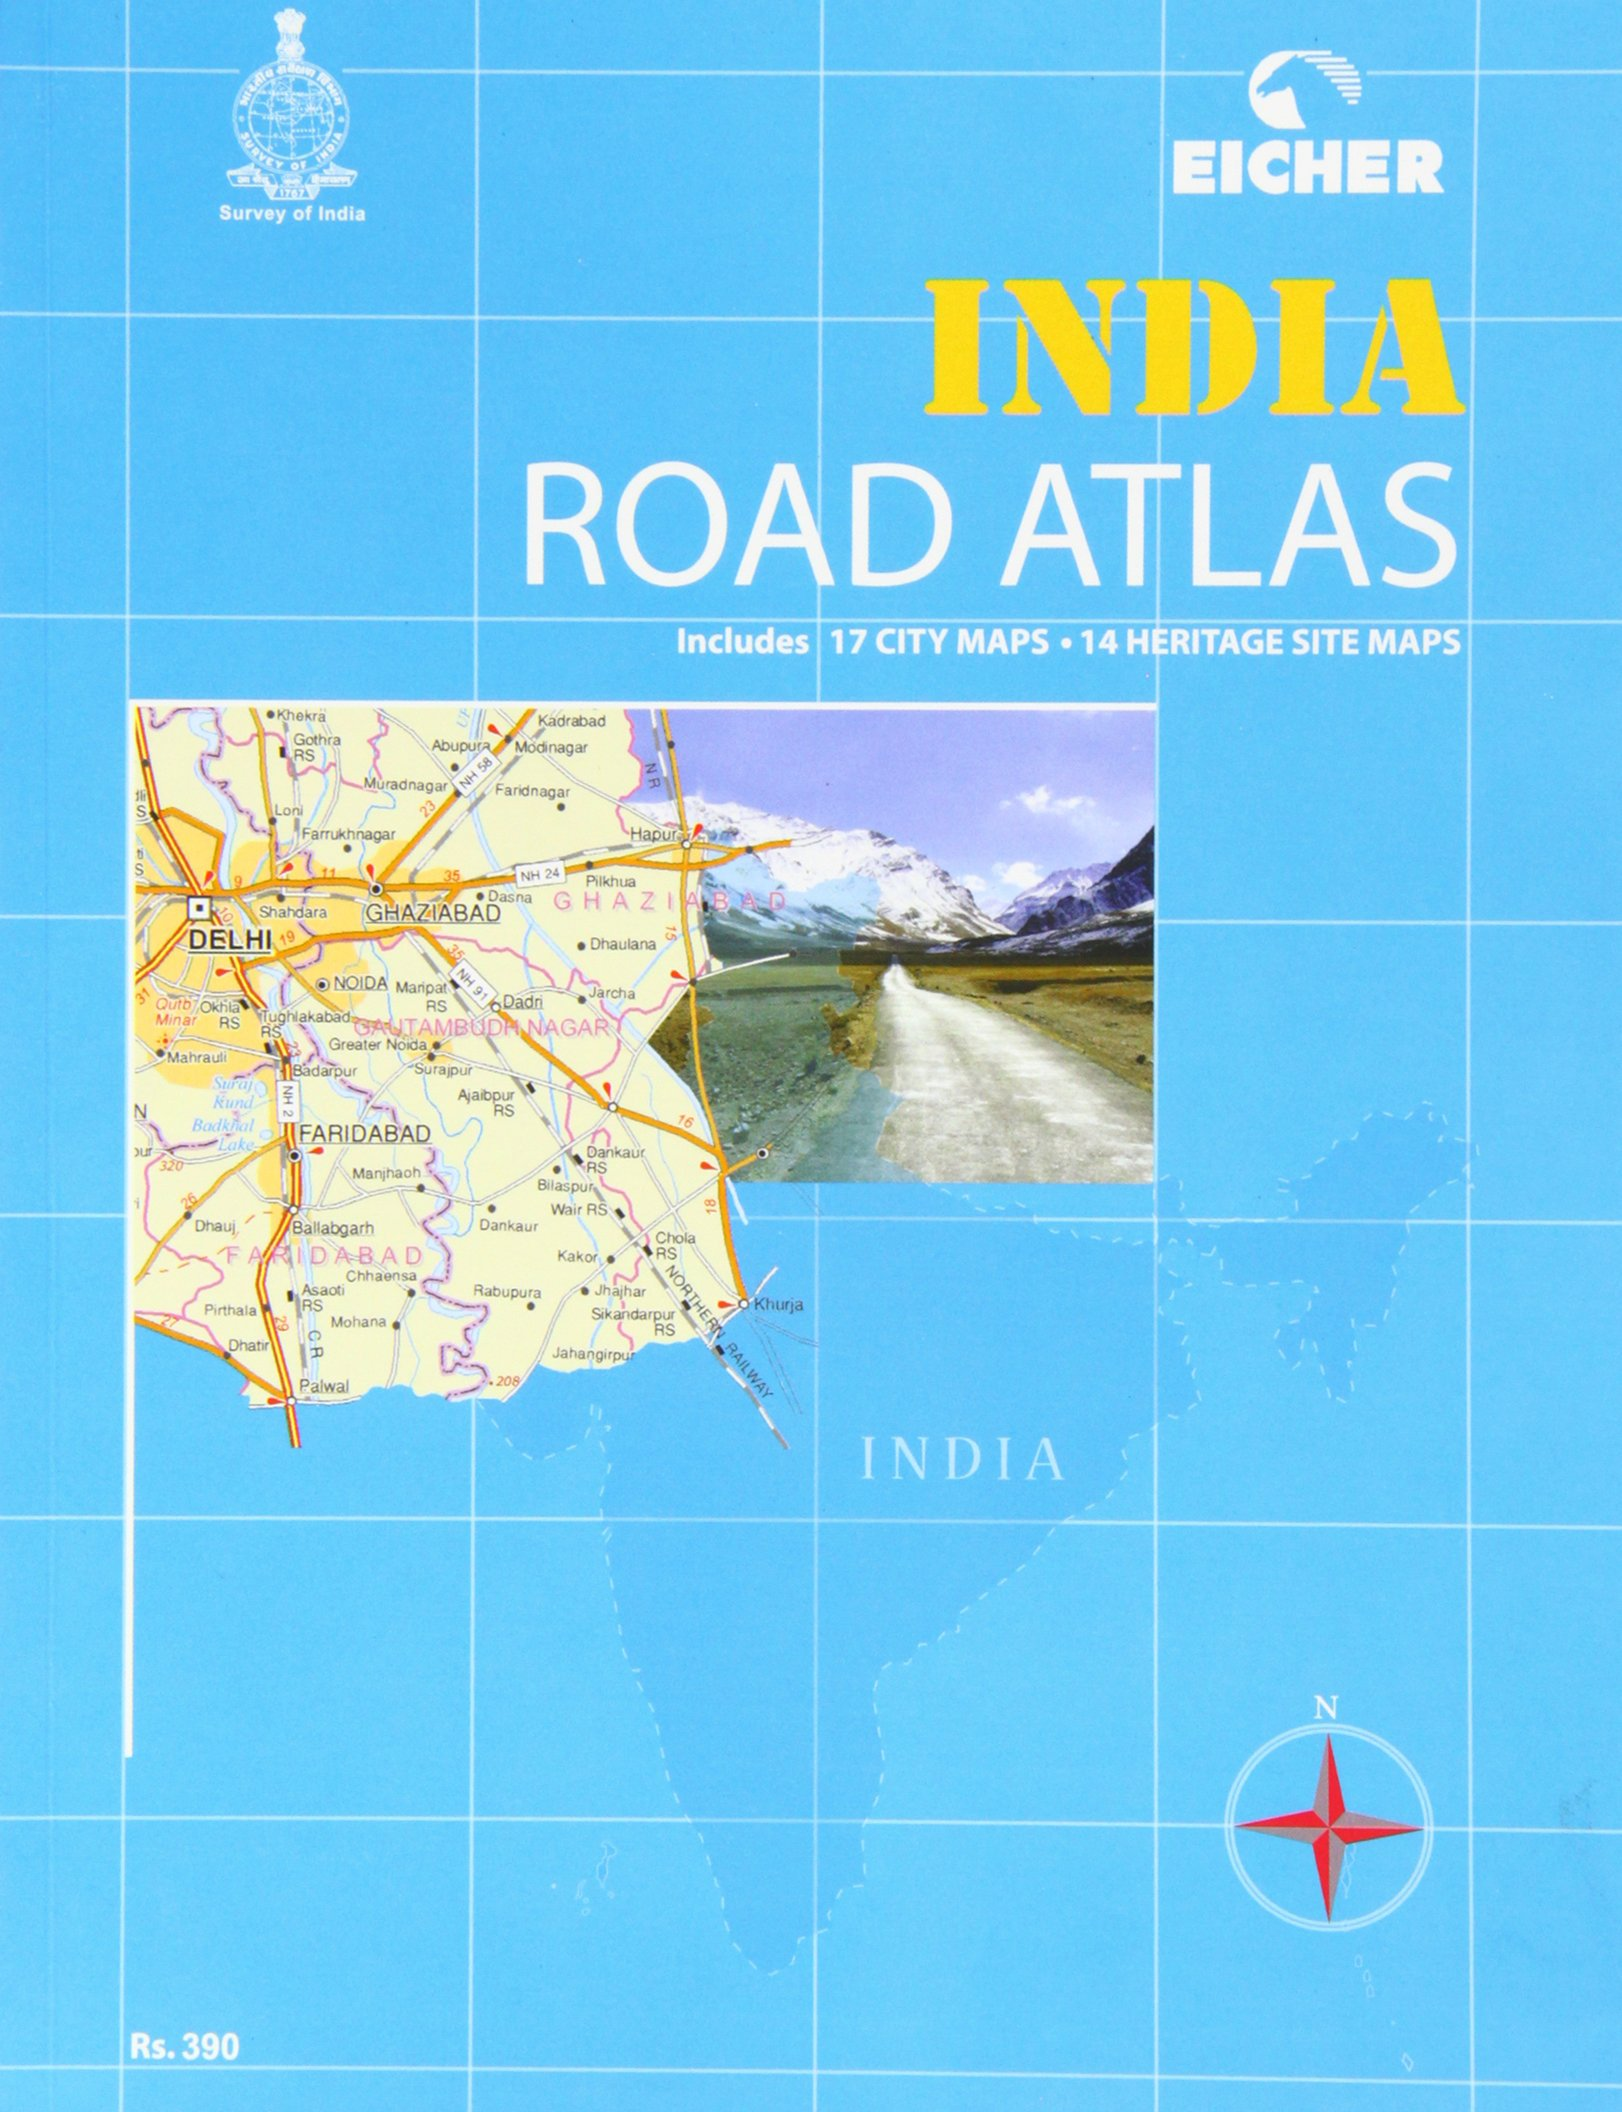 Amazon In Buy Eicher India Road Atlas Book Online At Low Prices In